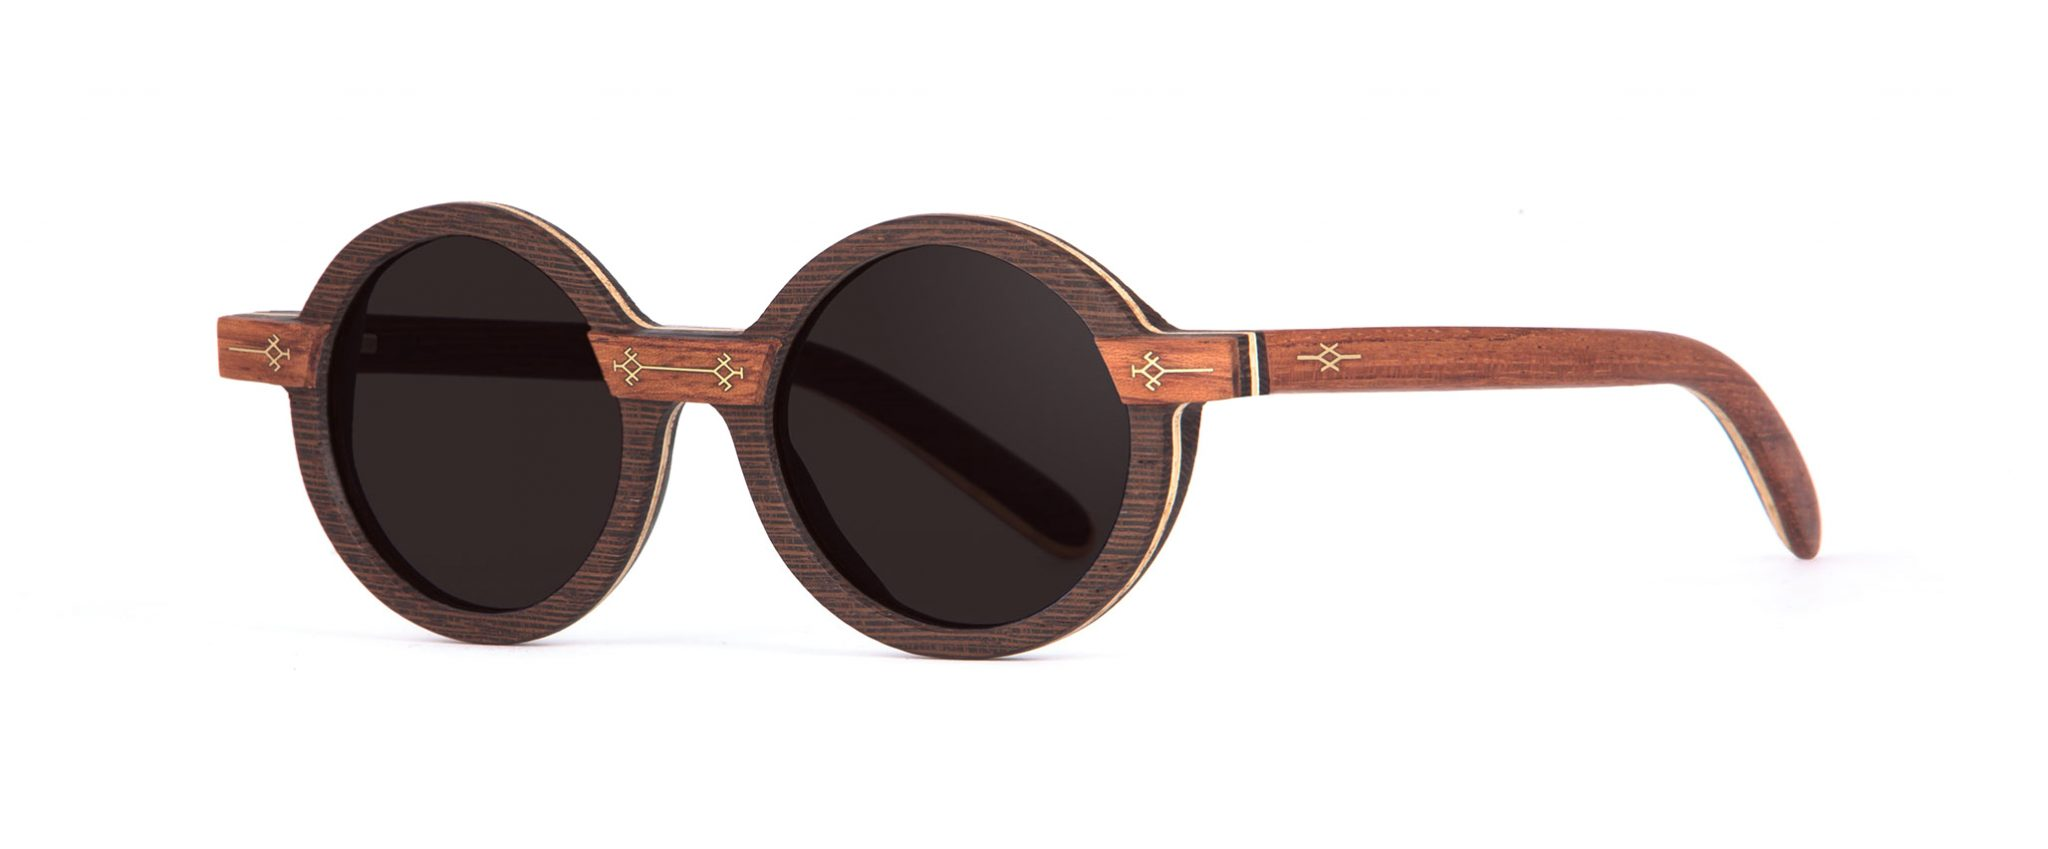 Dihya Wenge Wood Round Designer Sunglasses VAKAY with Gold